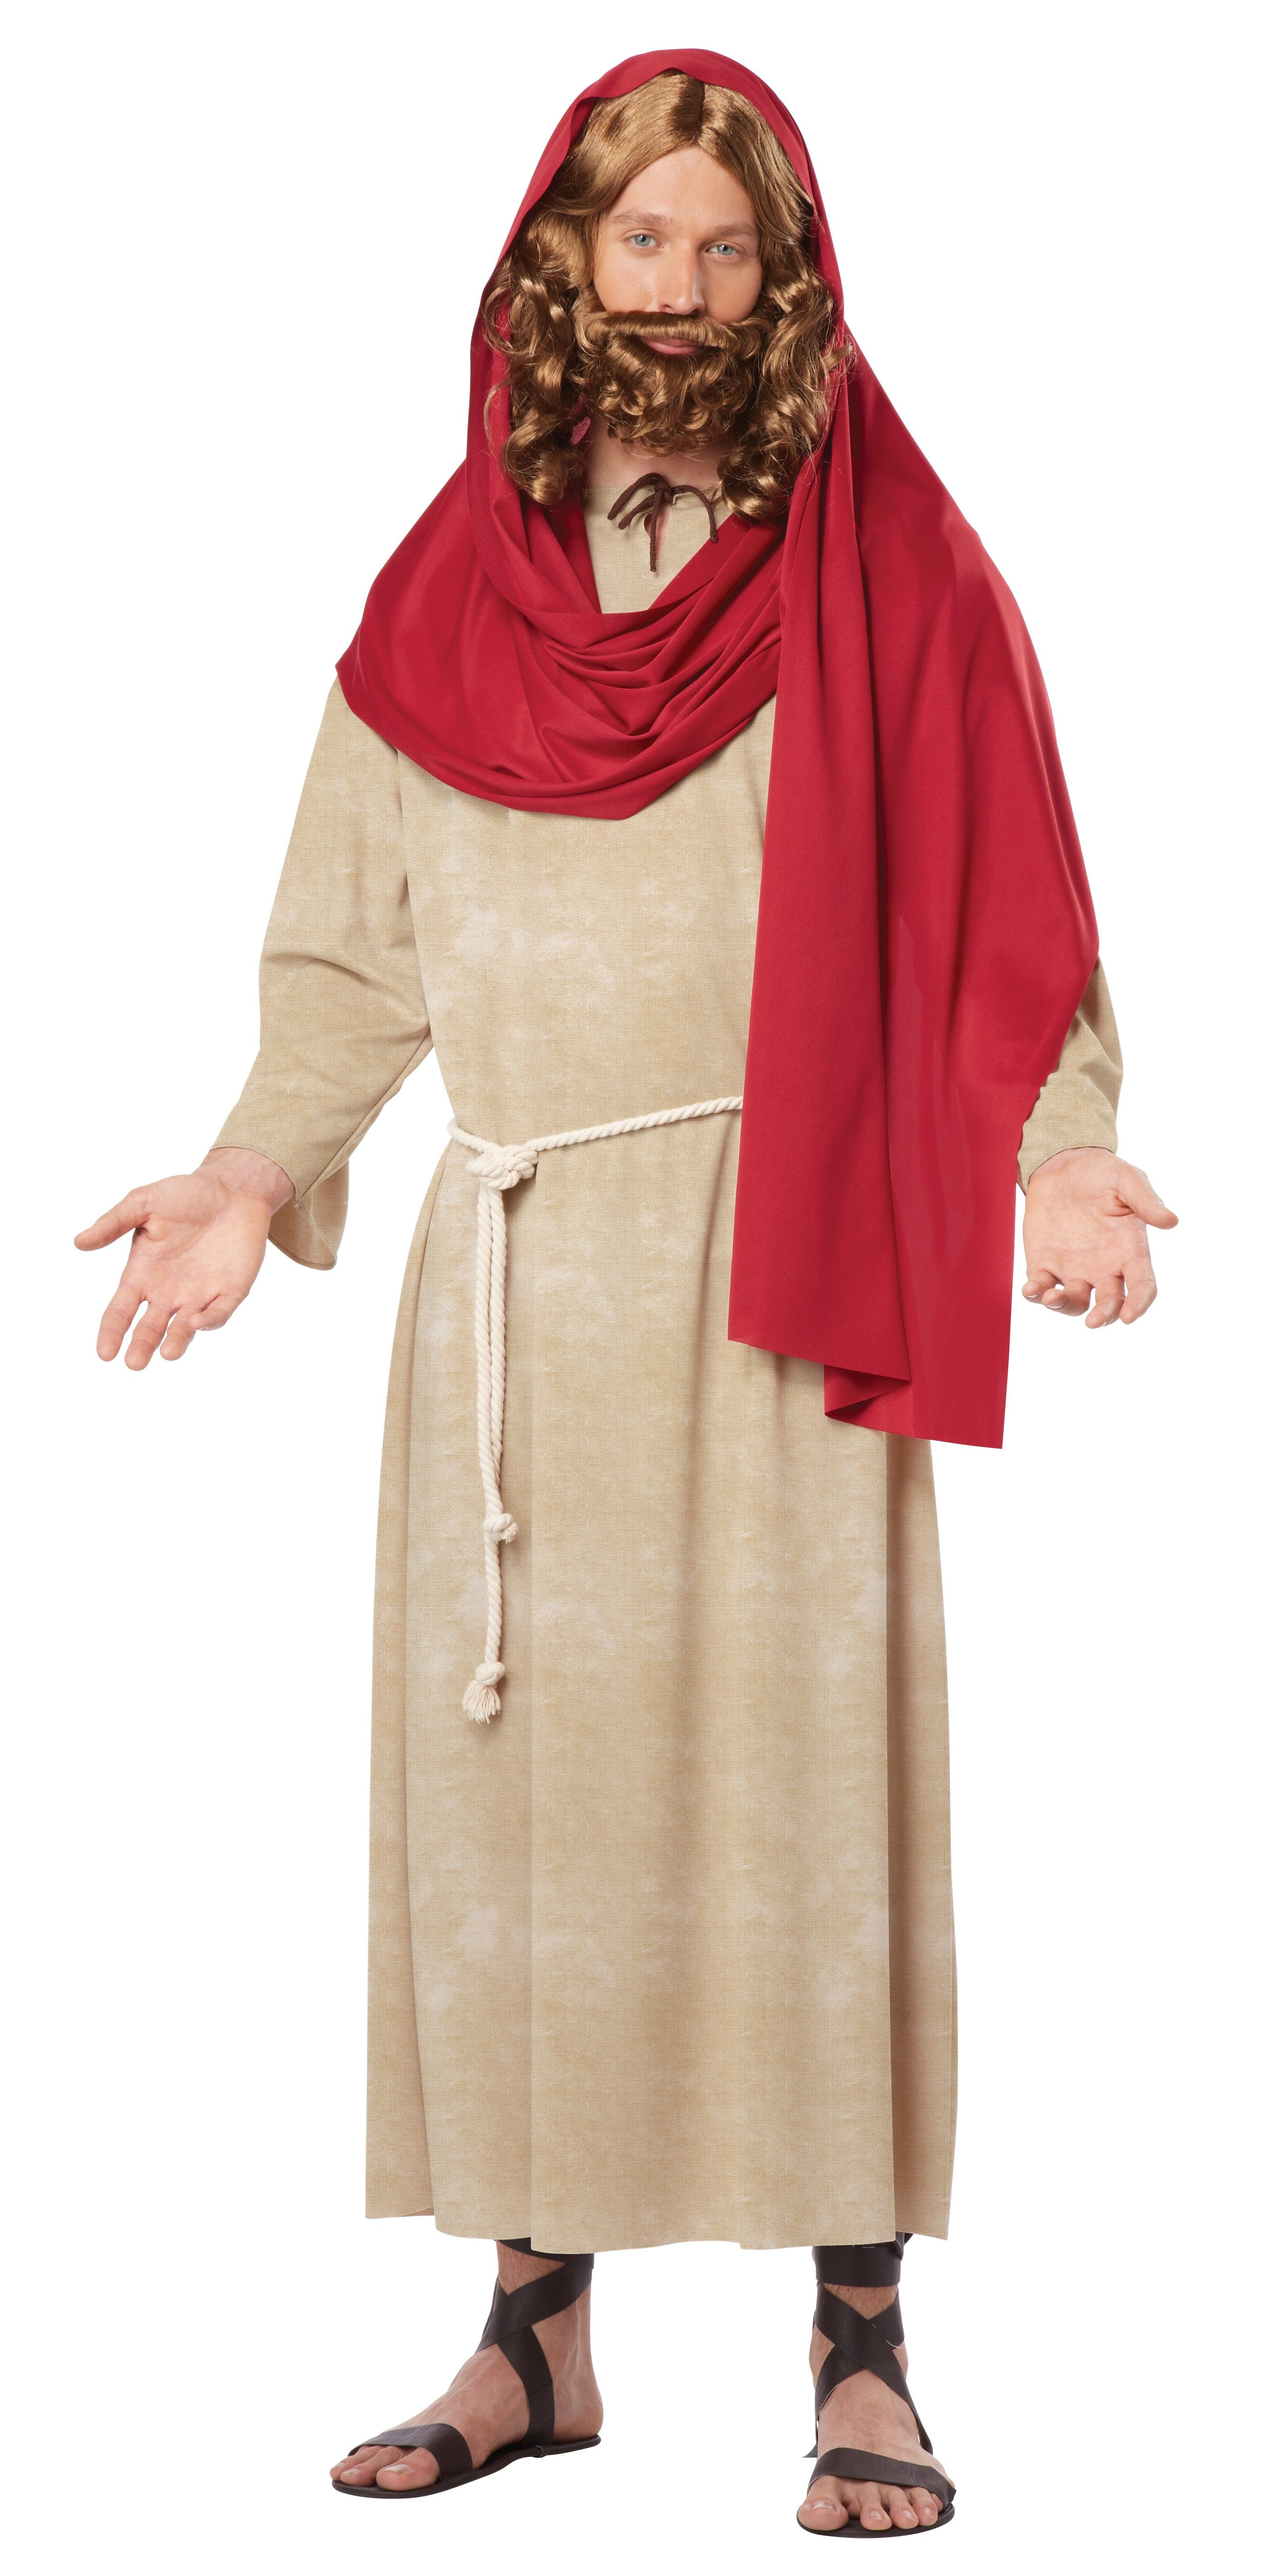 Jesus costume costumes till jul tema pinterest jesus costume you can turn yourself into jesus in this adult costume straight out of the holy bible this jesus christ costume includes a robe with attached waist tie and solutioingenieria Image collections